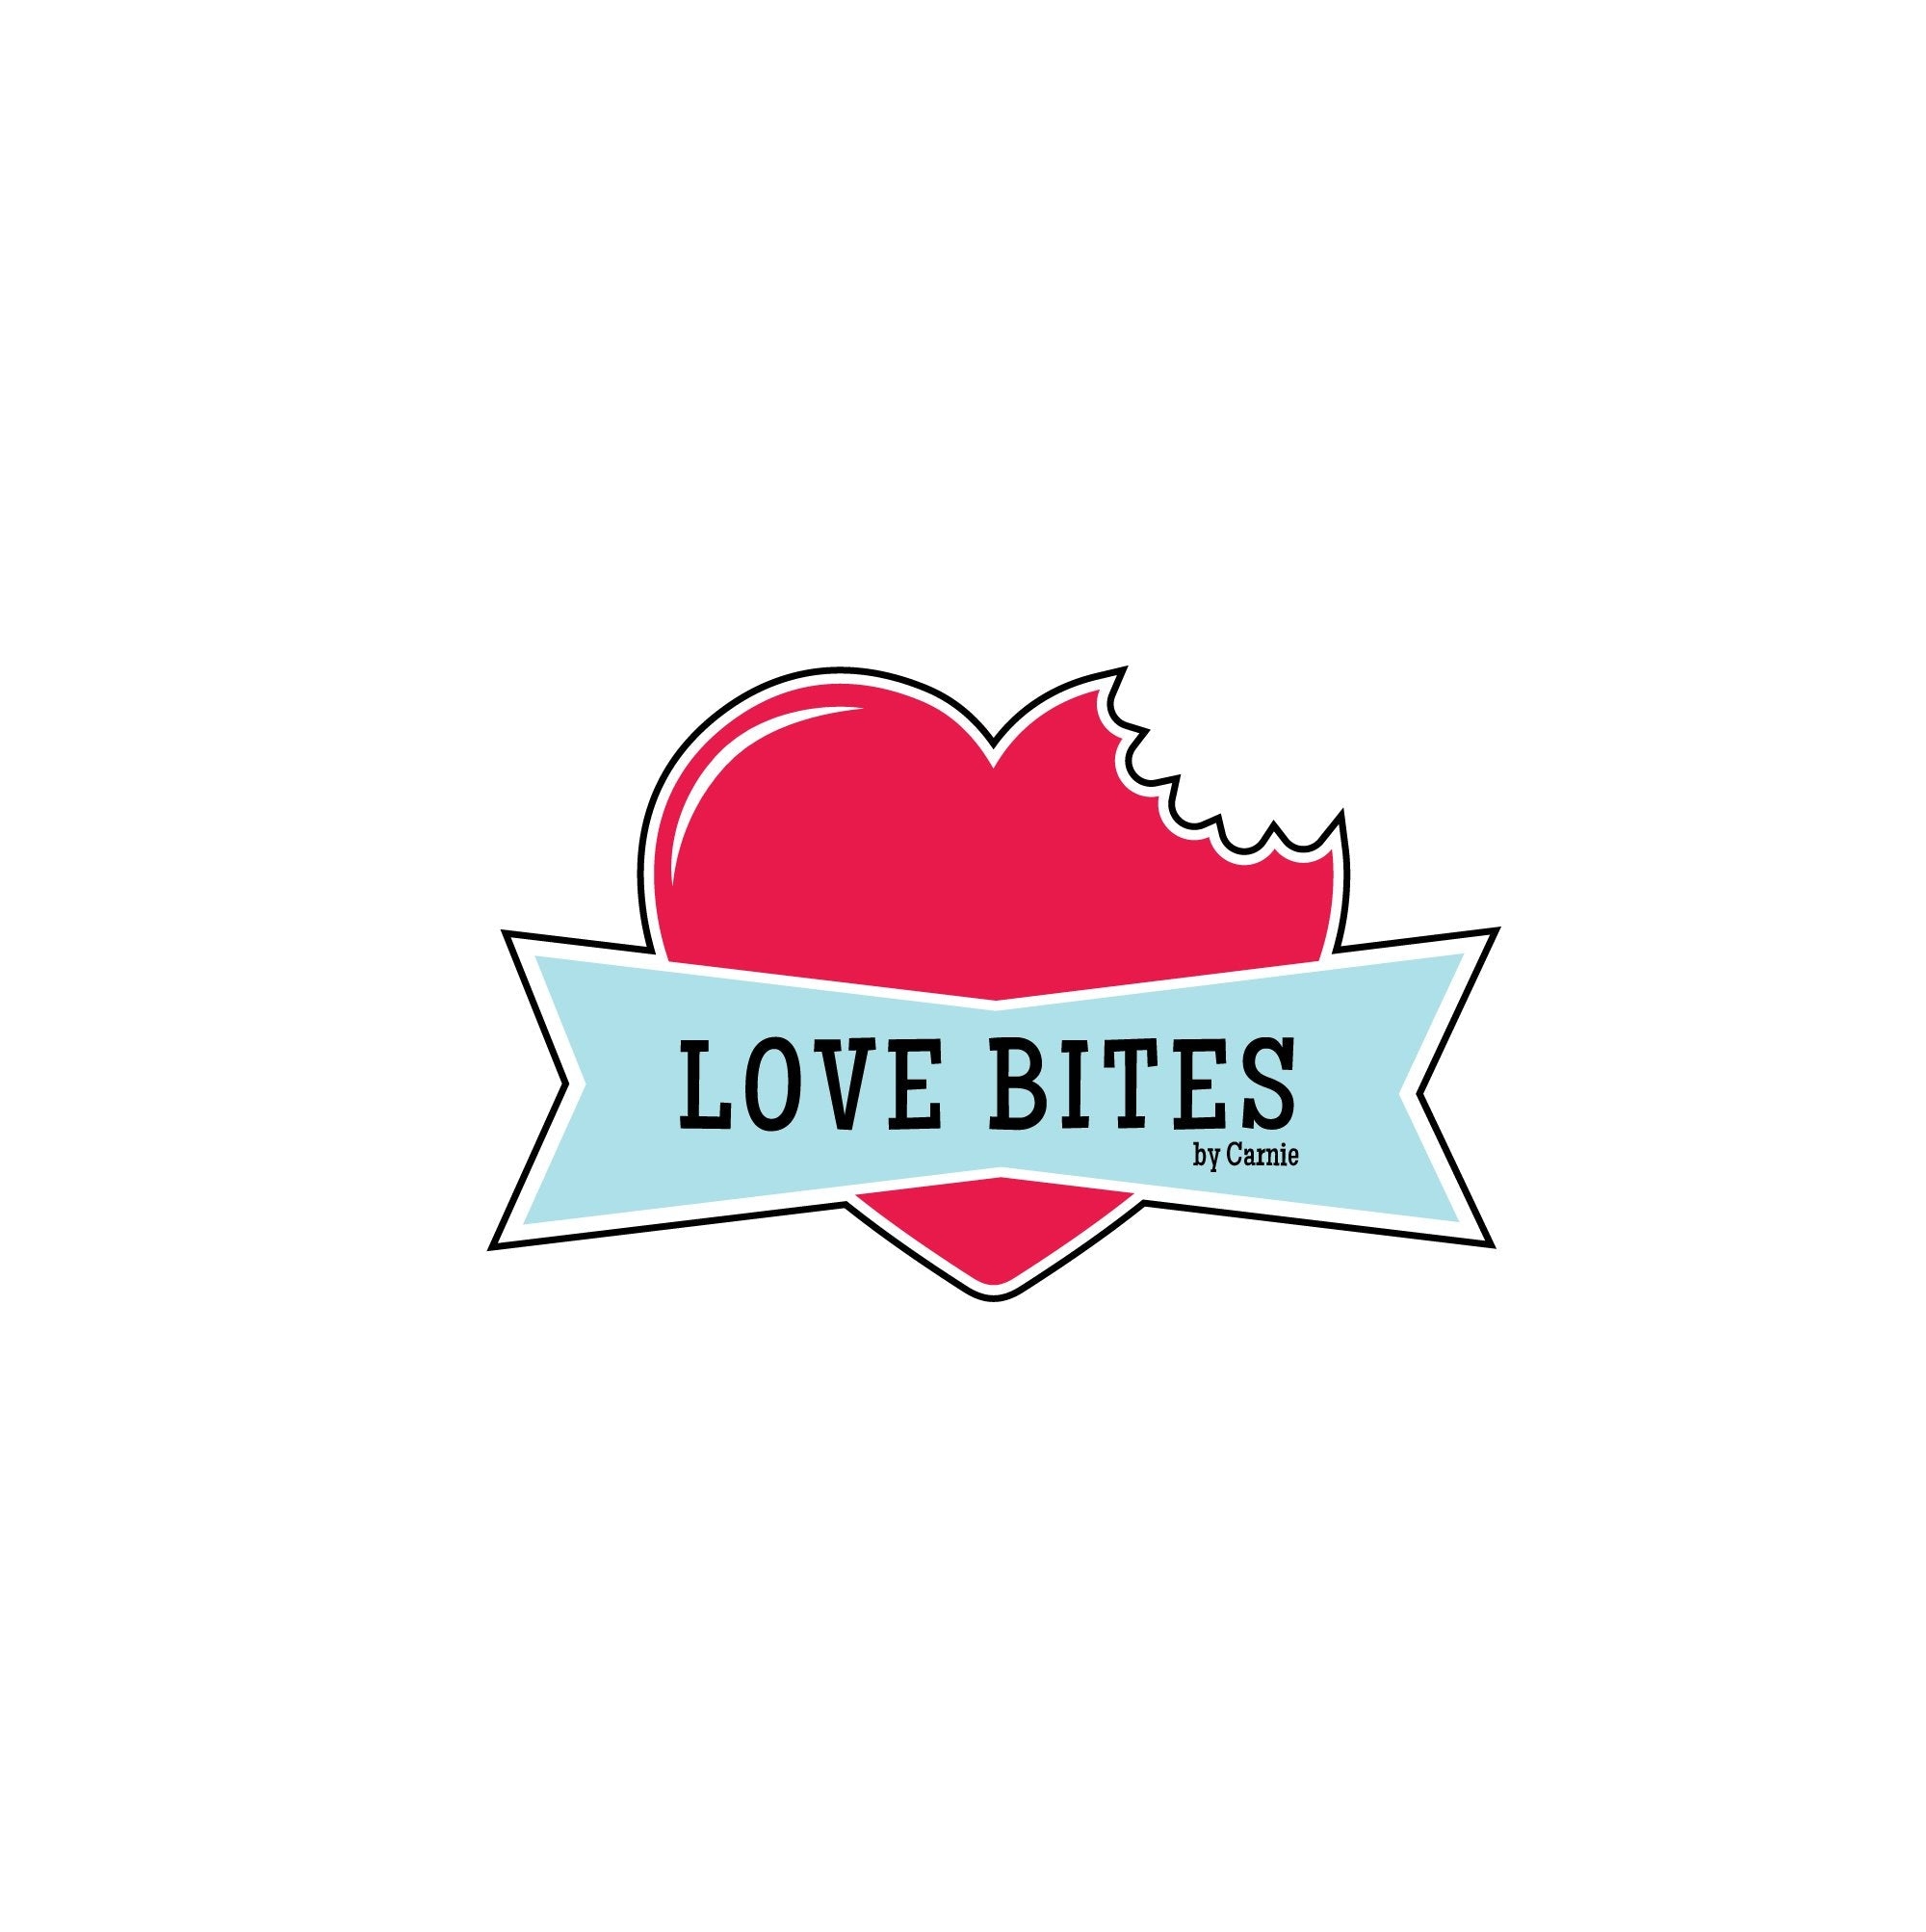 leanne and company love bites by carnie logo design charlotte nc